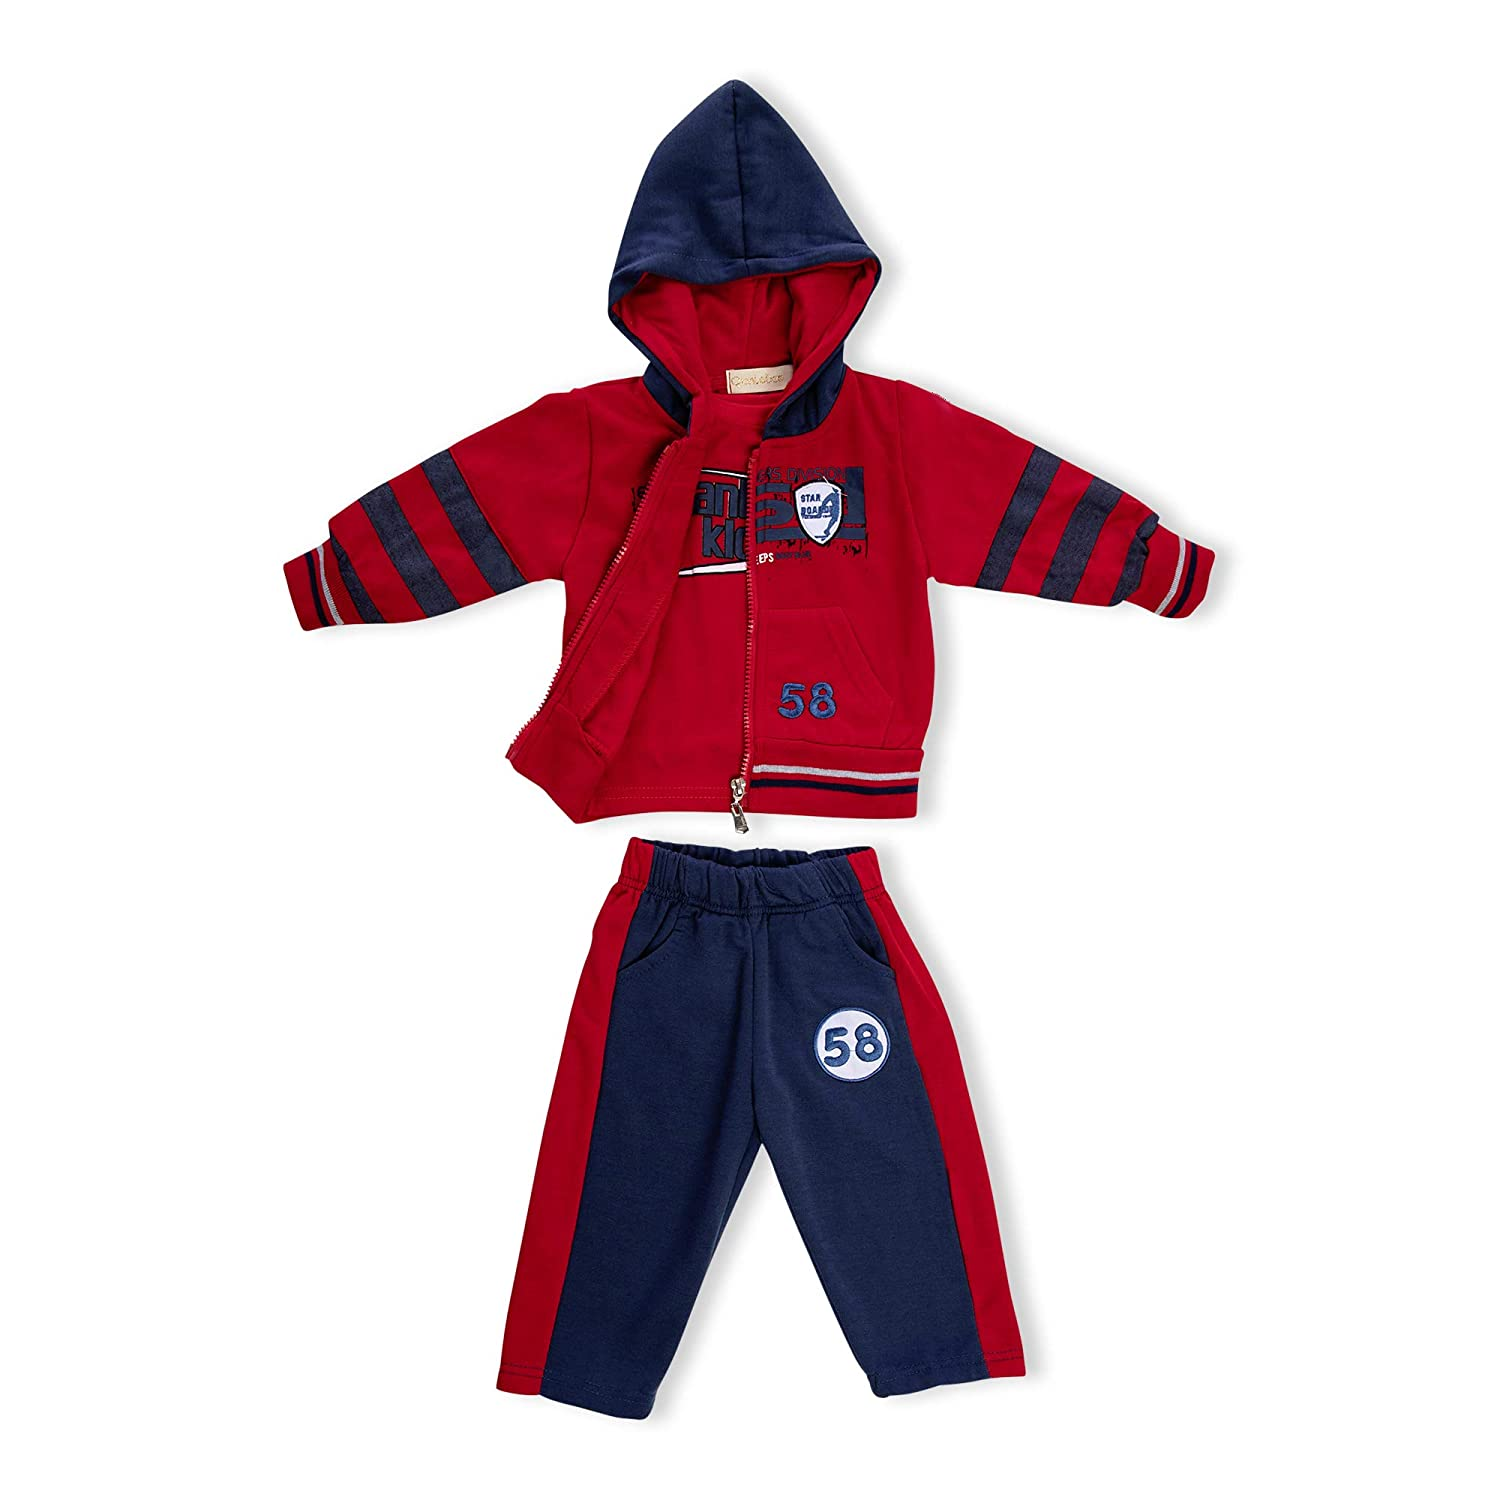 3pc Toddler baby boys Girls Mickey Outfit Hooded coat+T shirt+pants clothes set